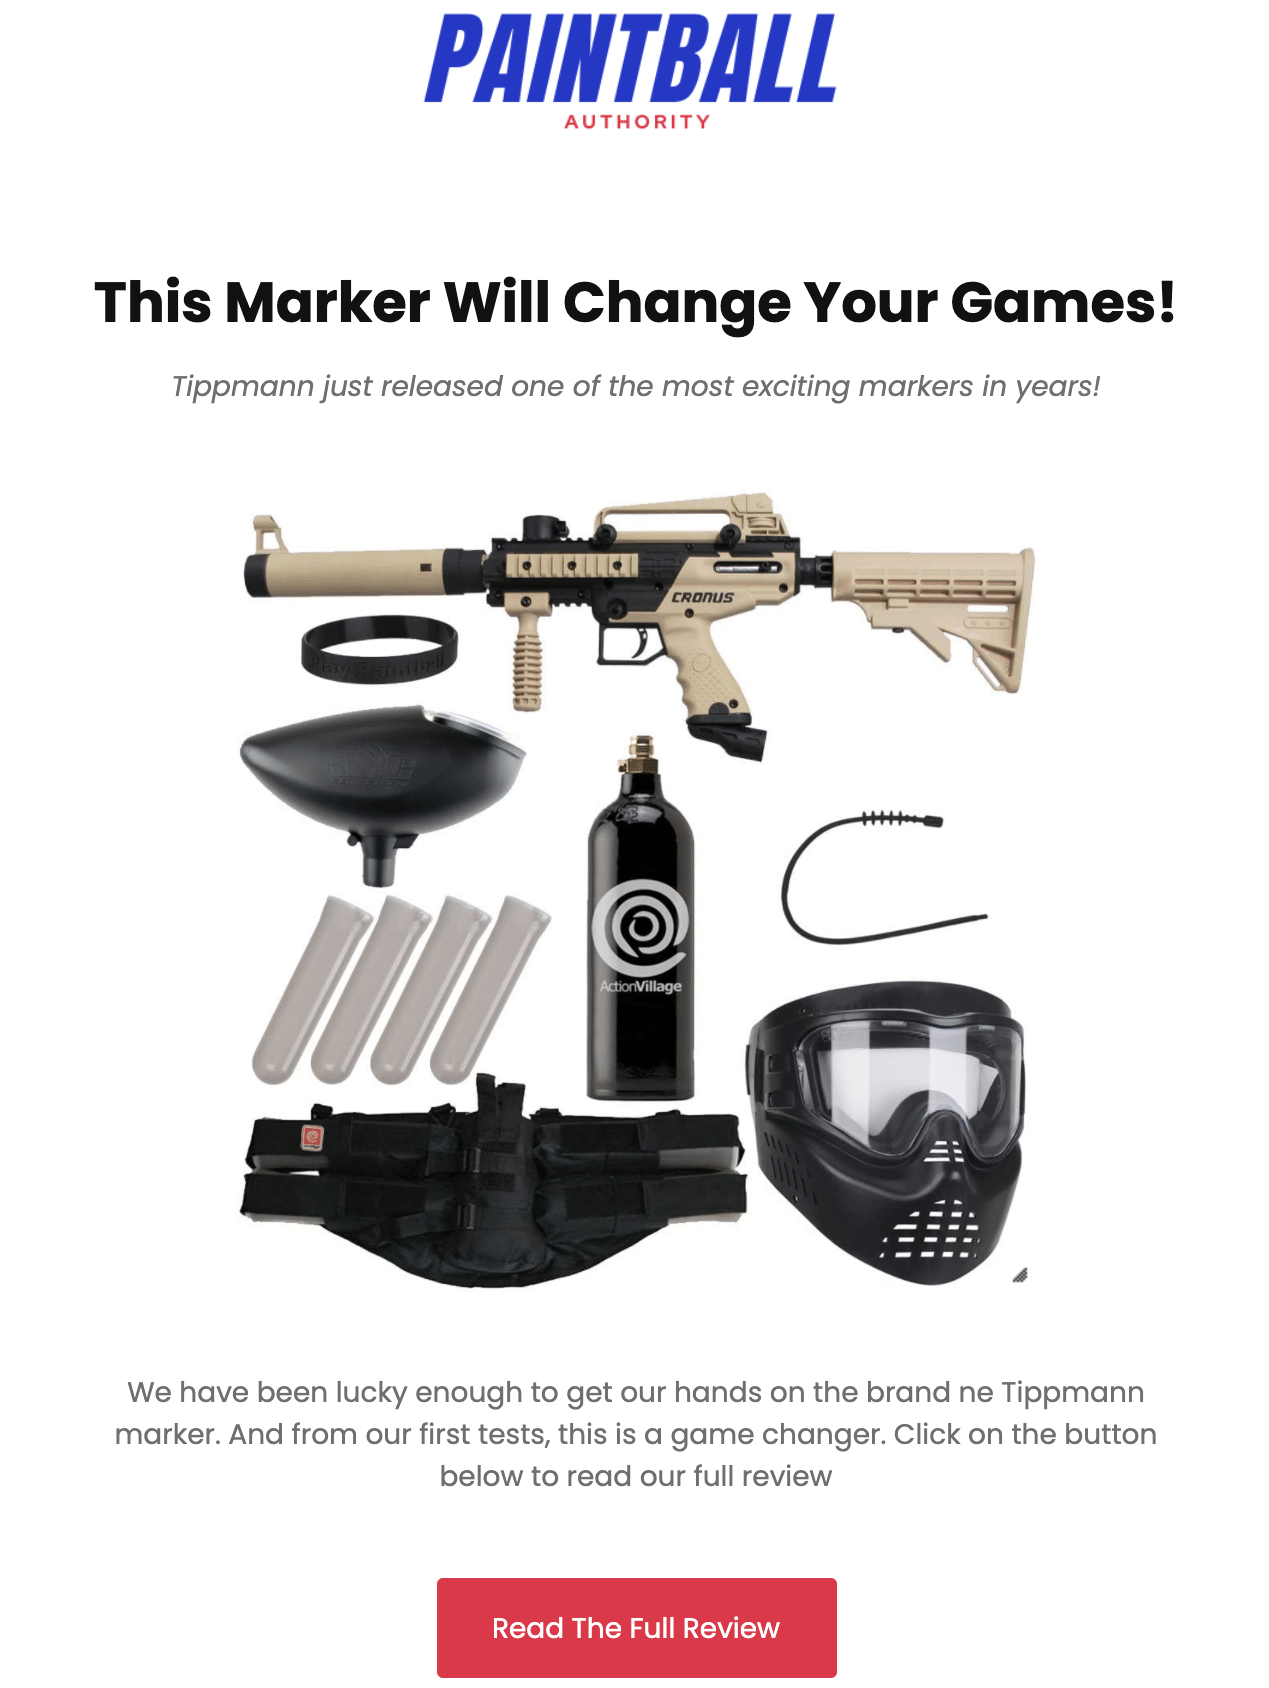 Paintball Authority Promotion Email